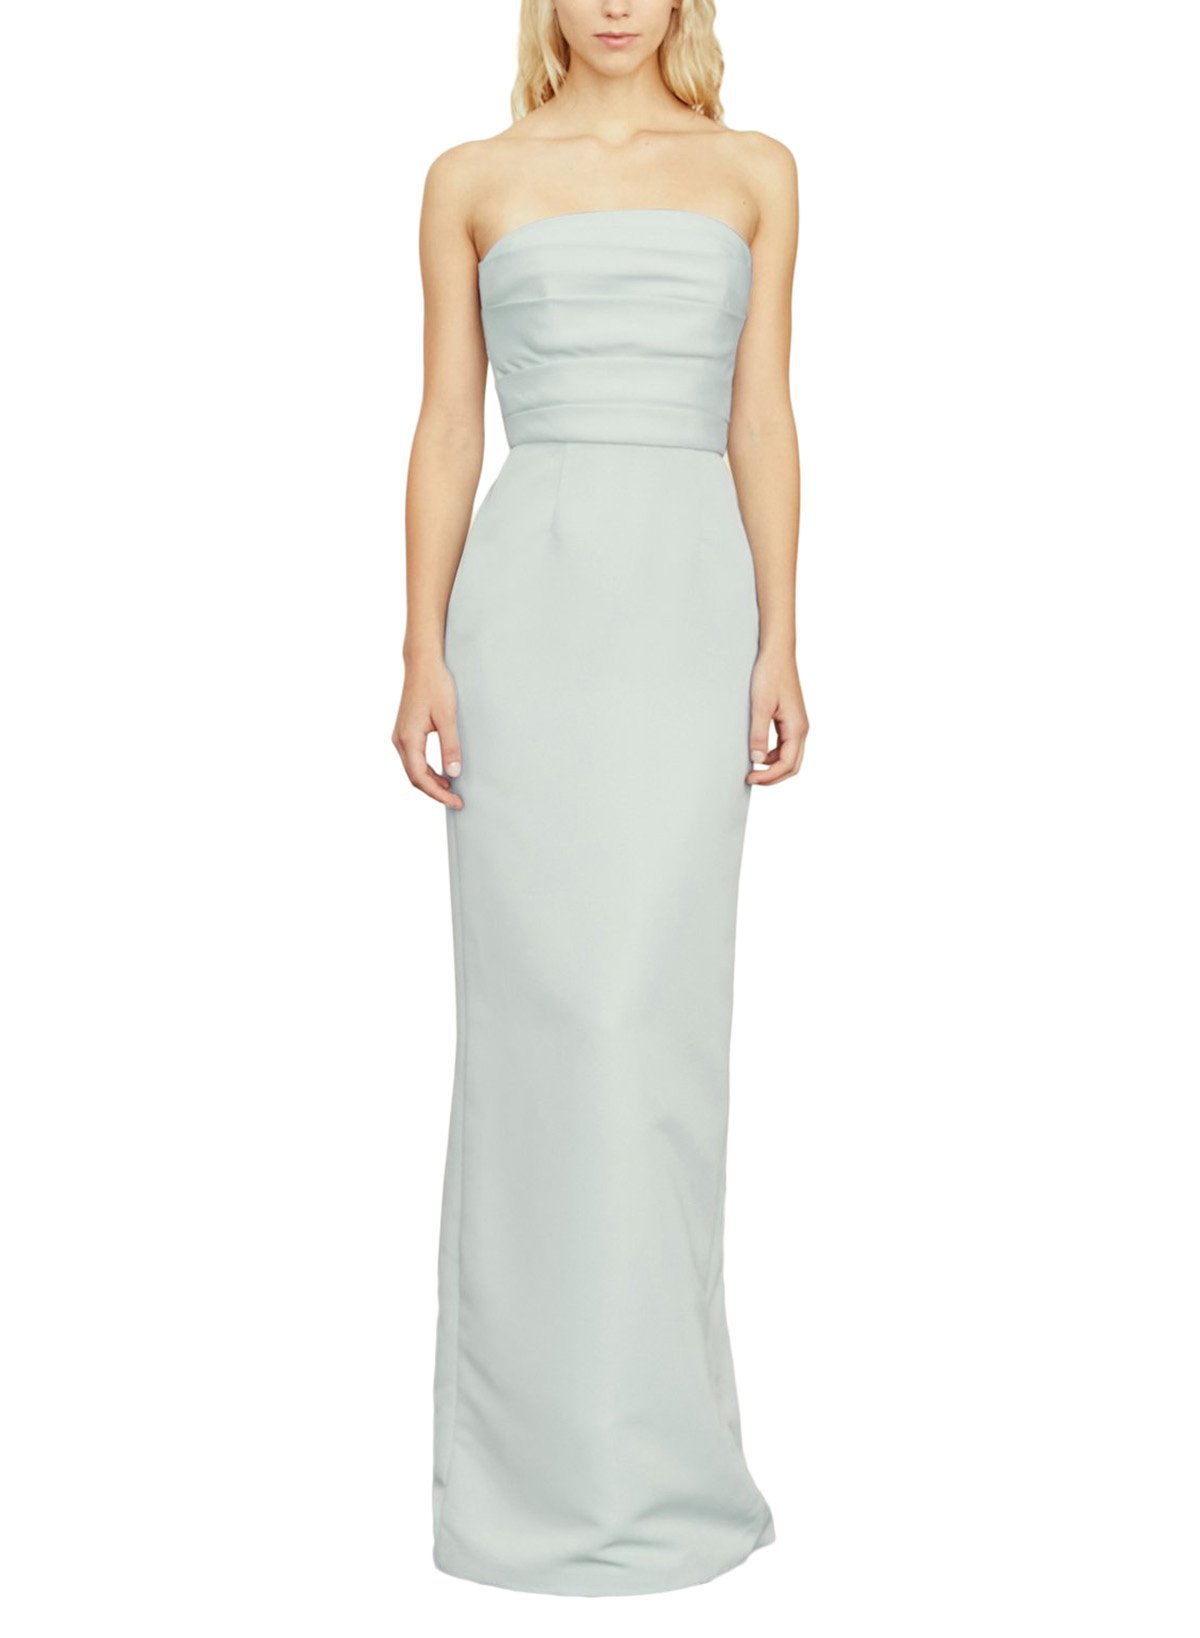 Amsale Sonia Bridesmaid Dress